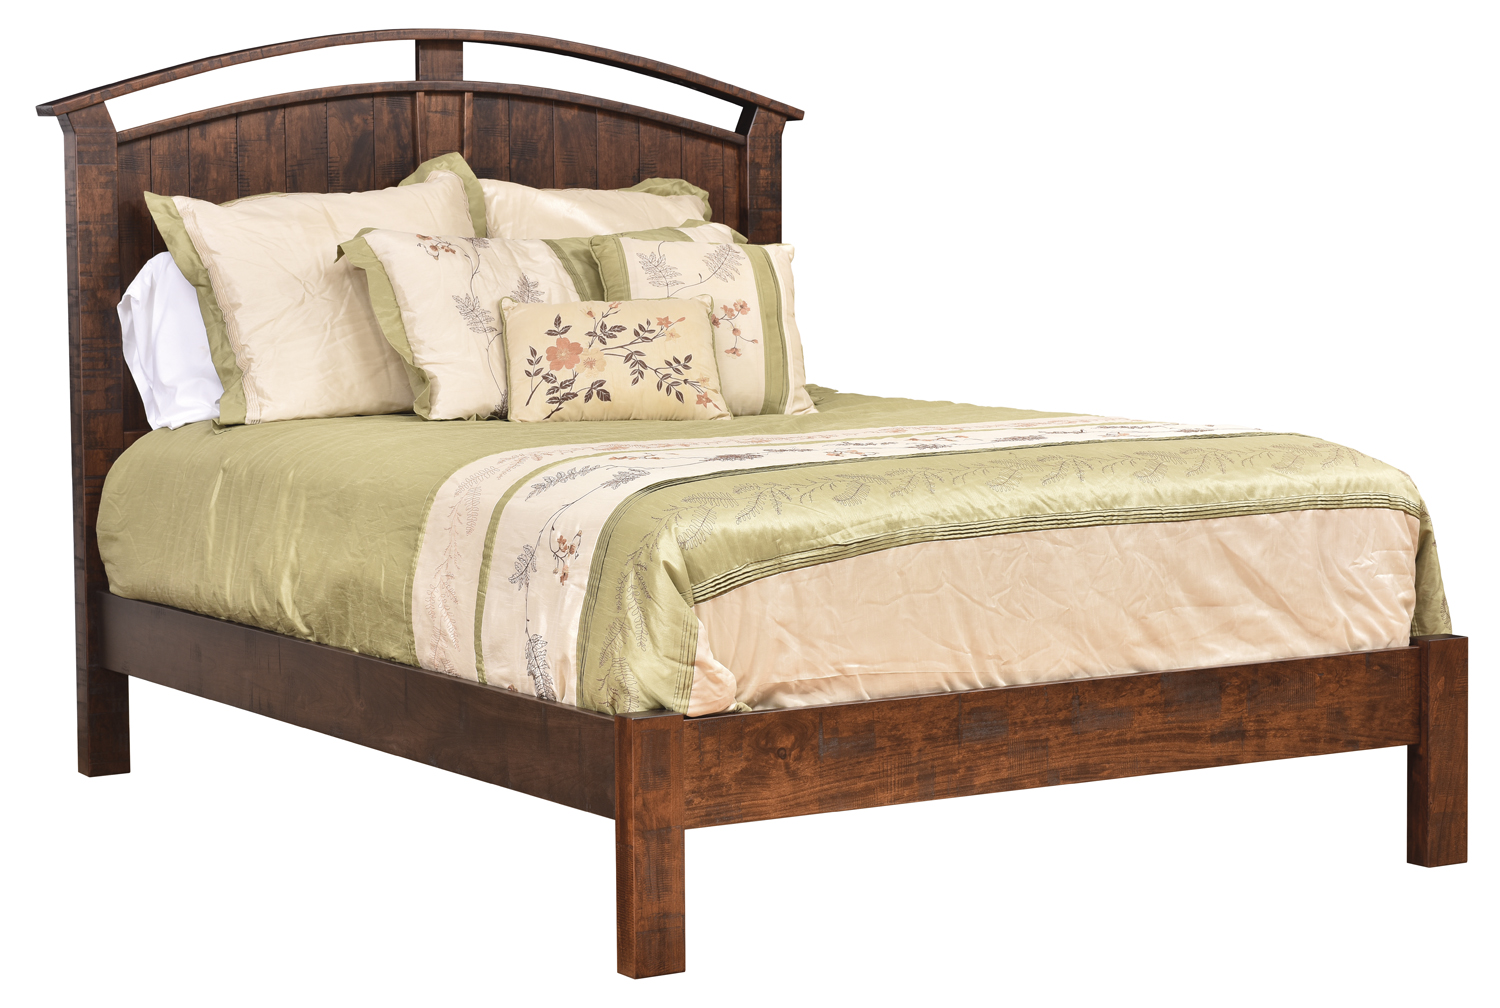 Timbermill Arch Bed